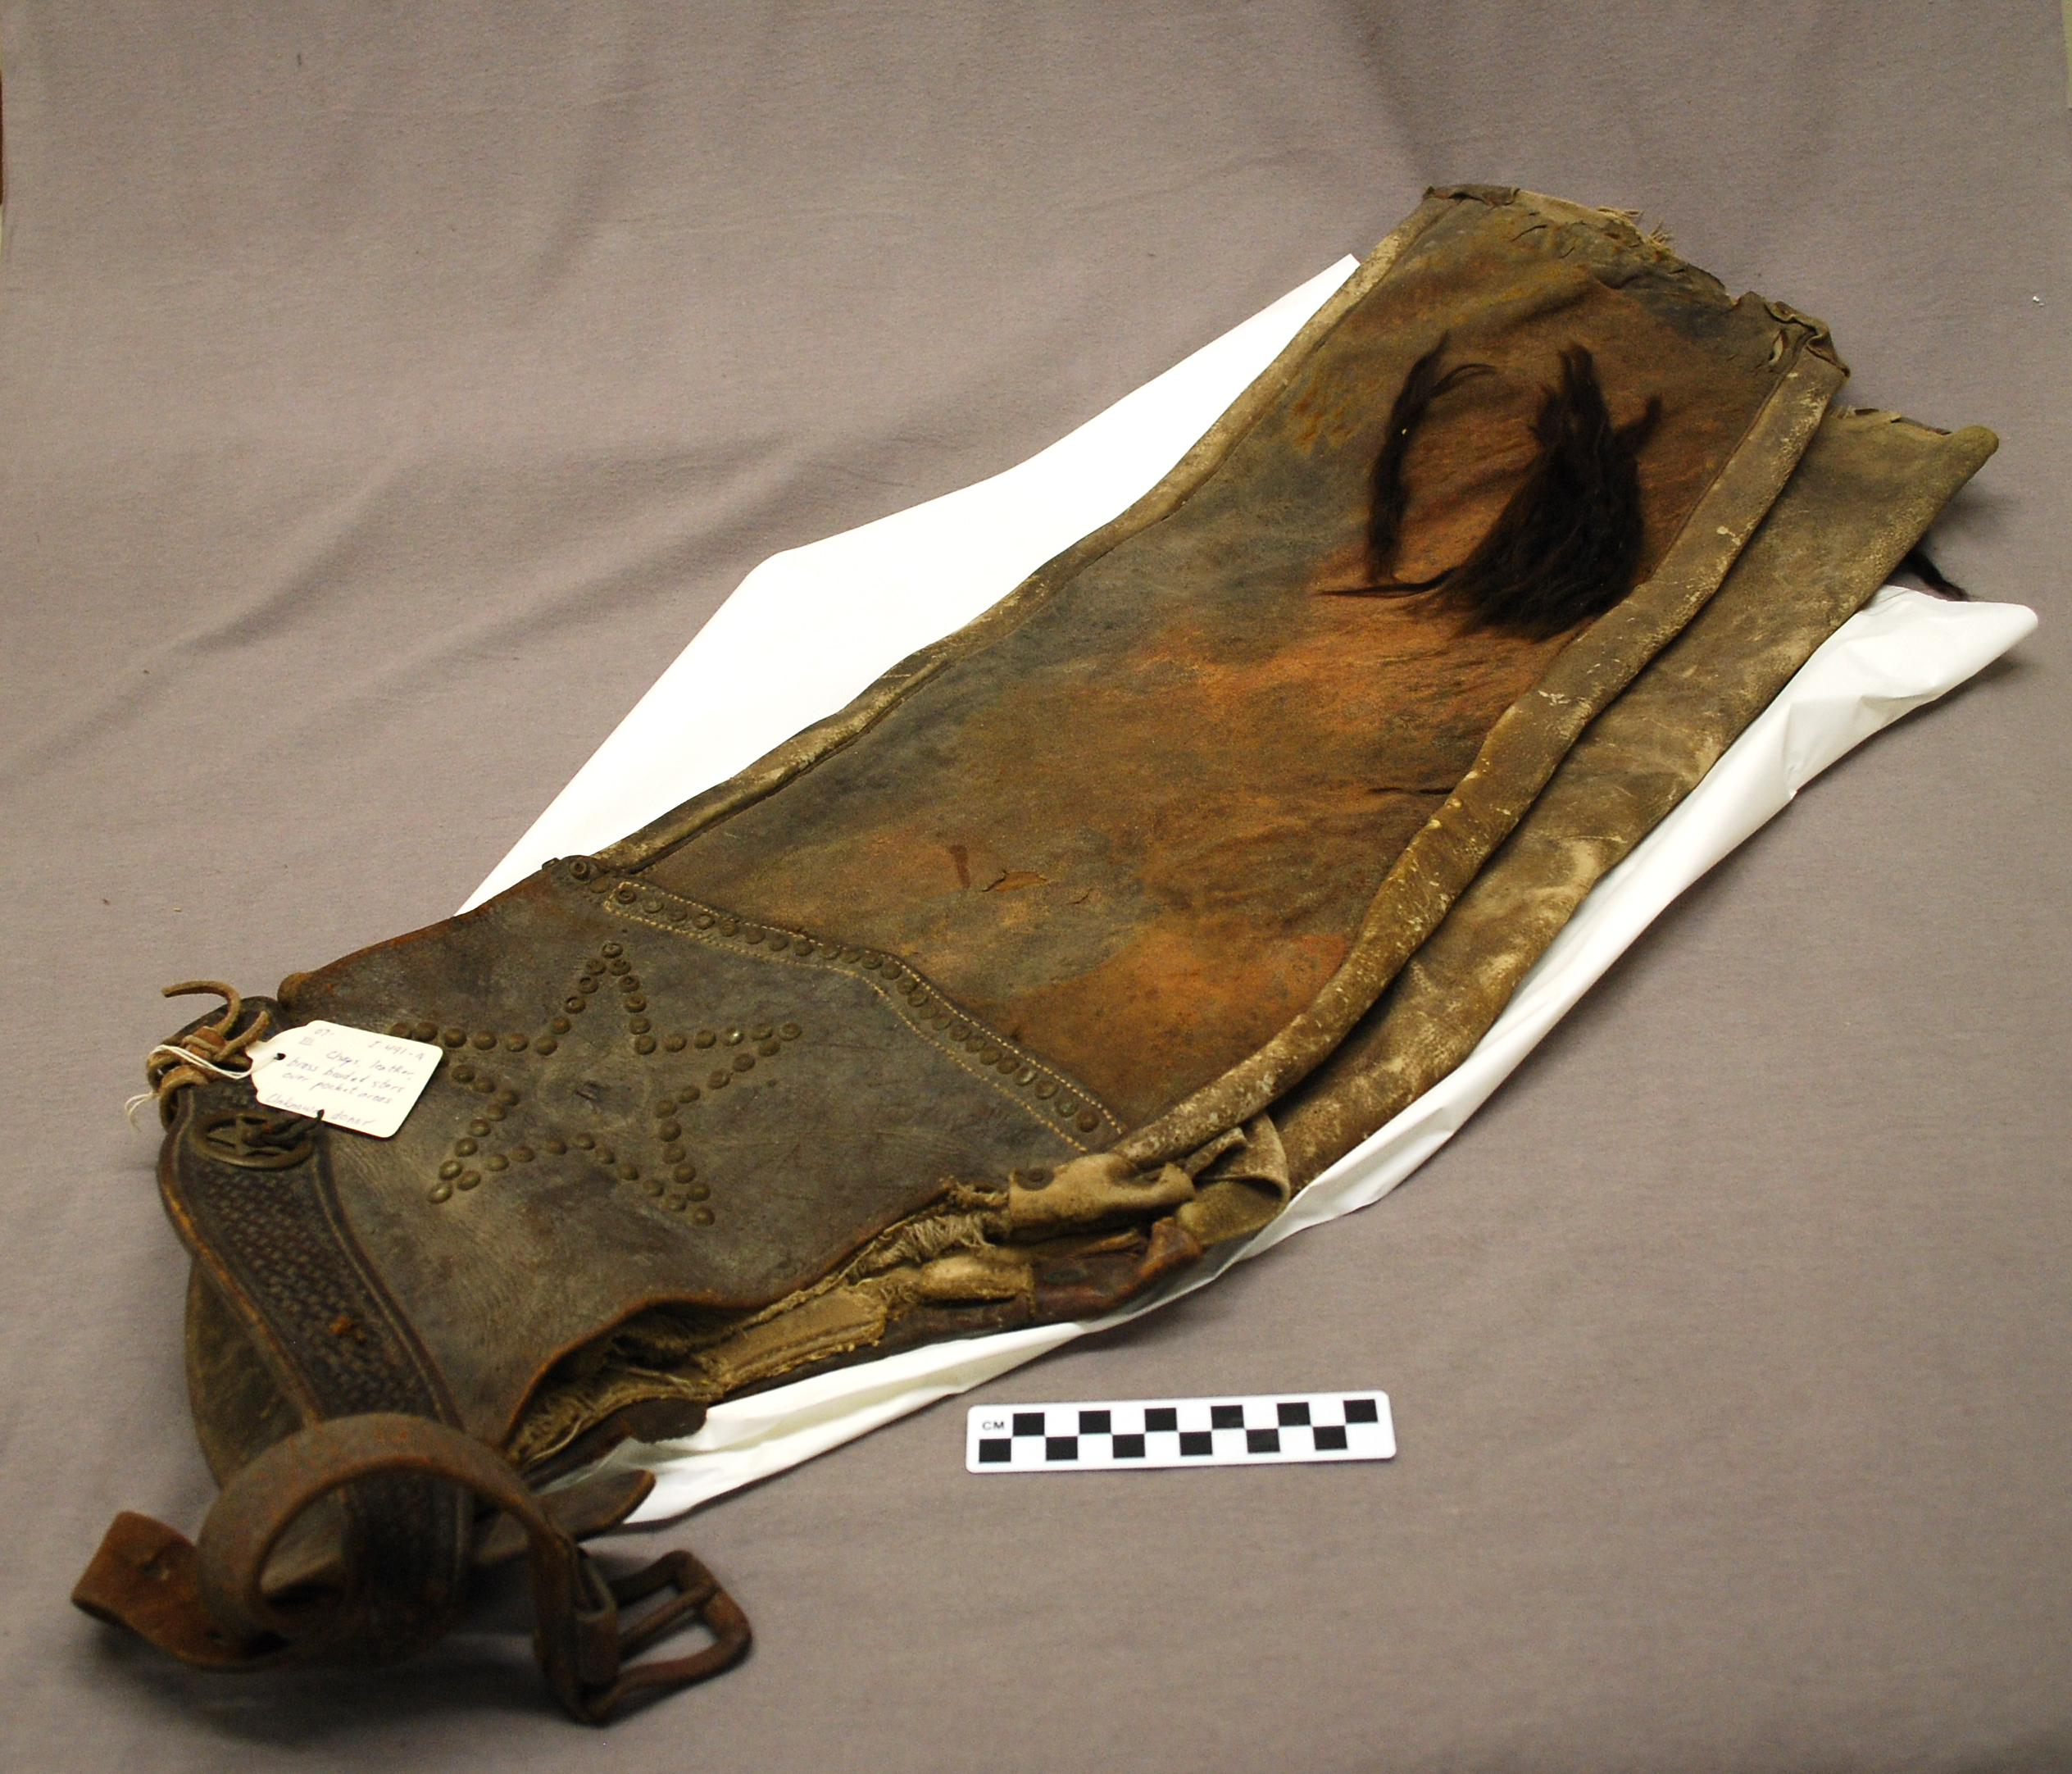 Object: Chaps (Leather chaps) | UTSA Institute Of Texan Cultures